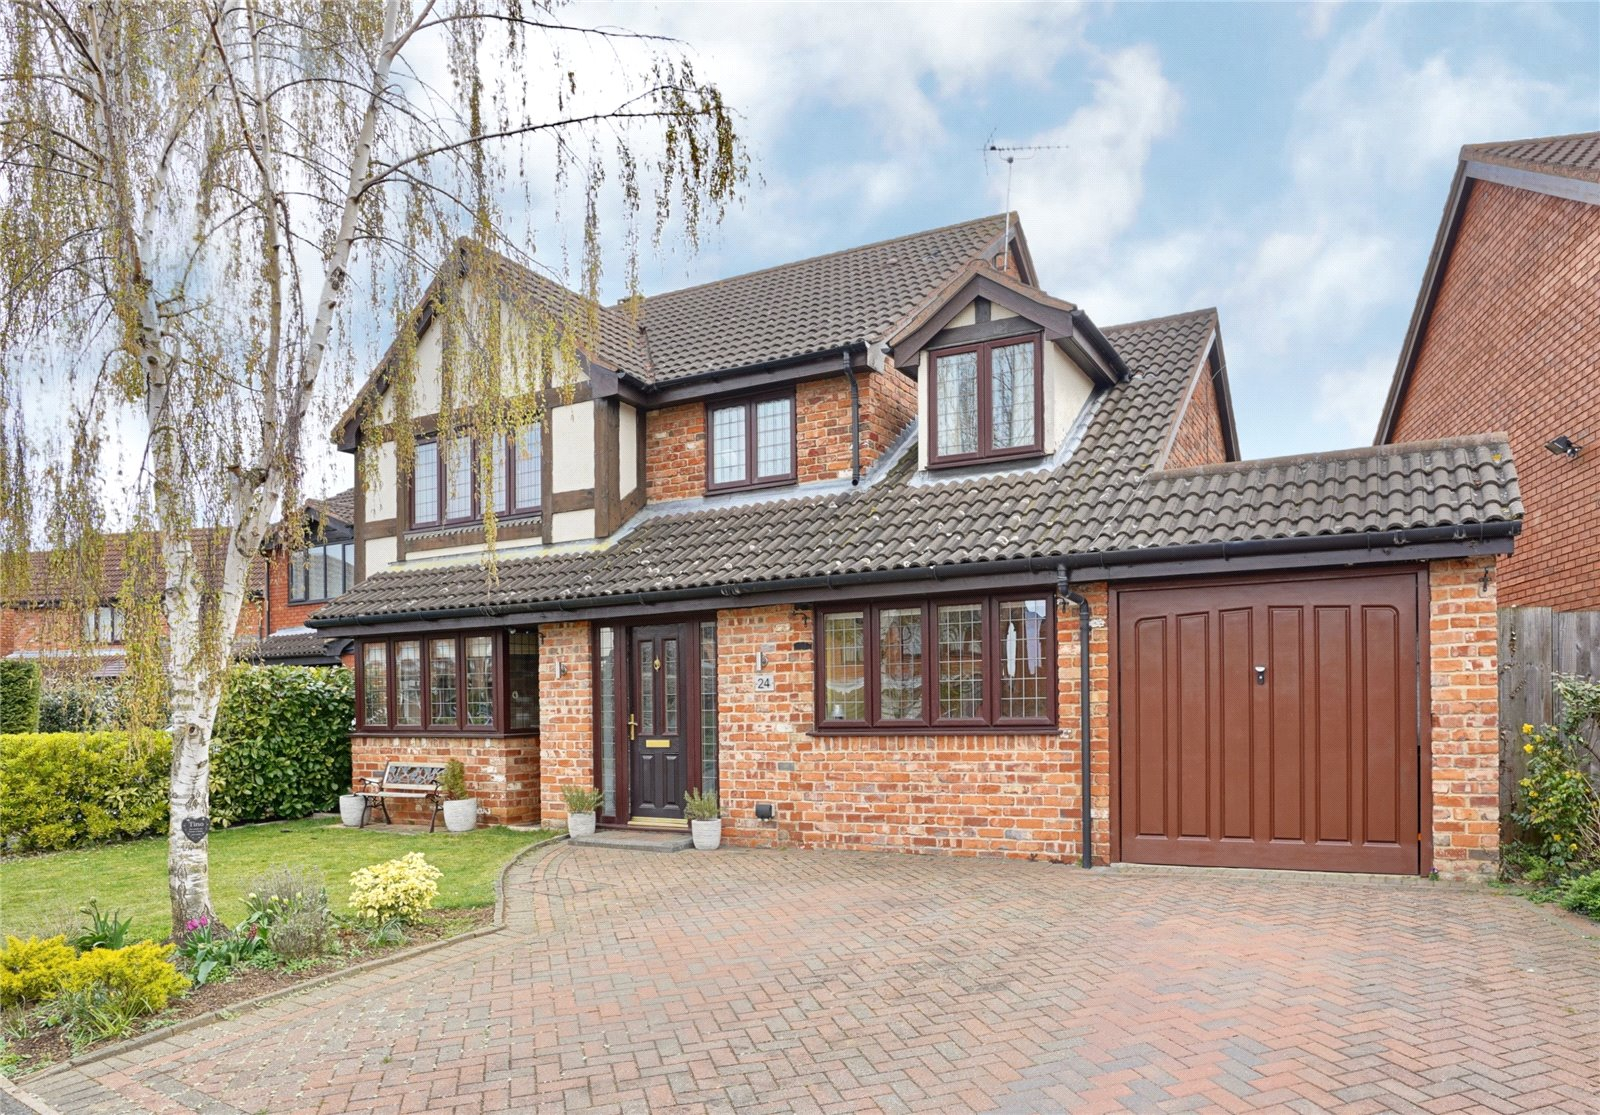 4 bed house for sale in Eaton Ford, Lottings Way, PE19 7QX - Property Image 1